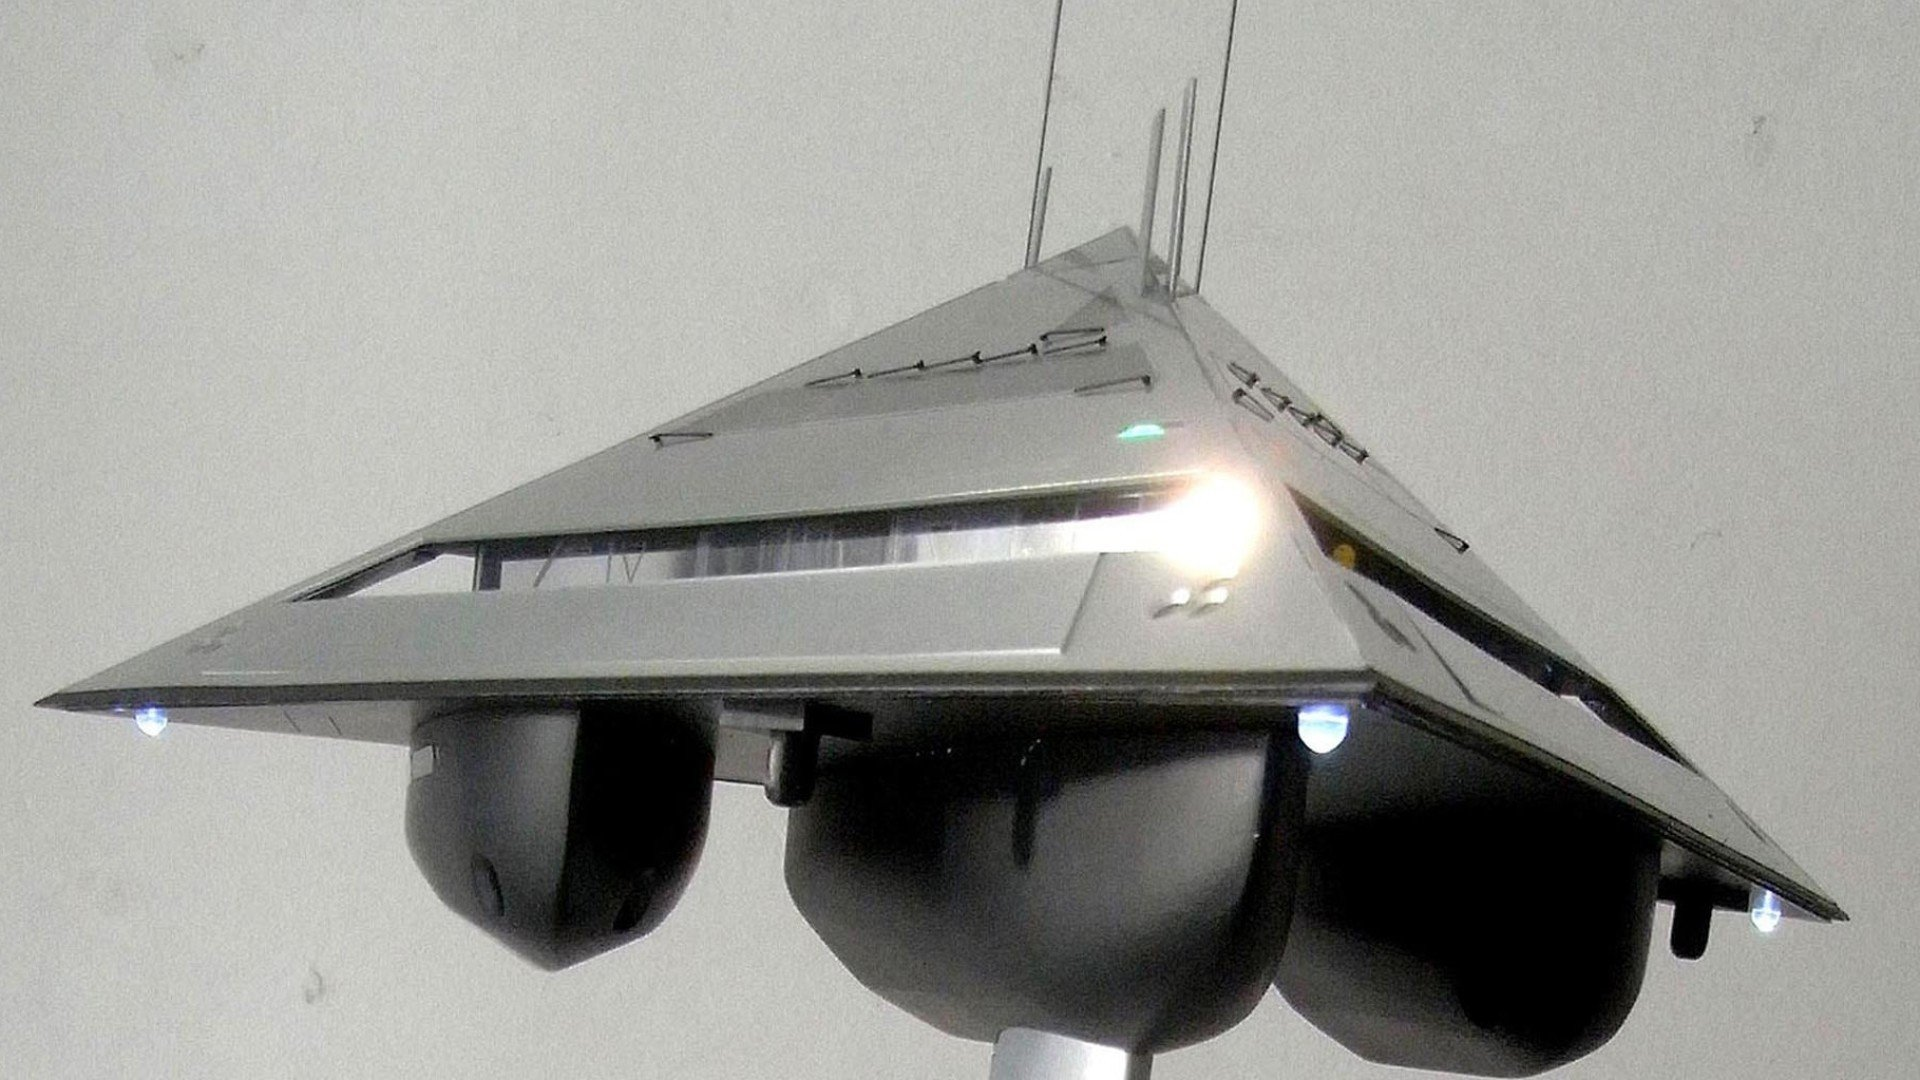 booster-superyacht-of-the-future www.dailydot.com